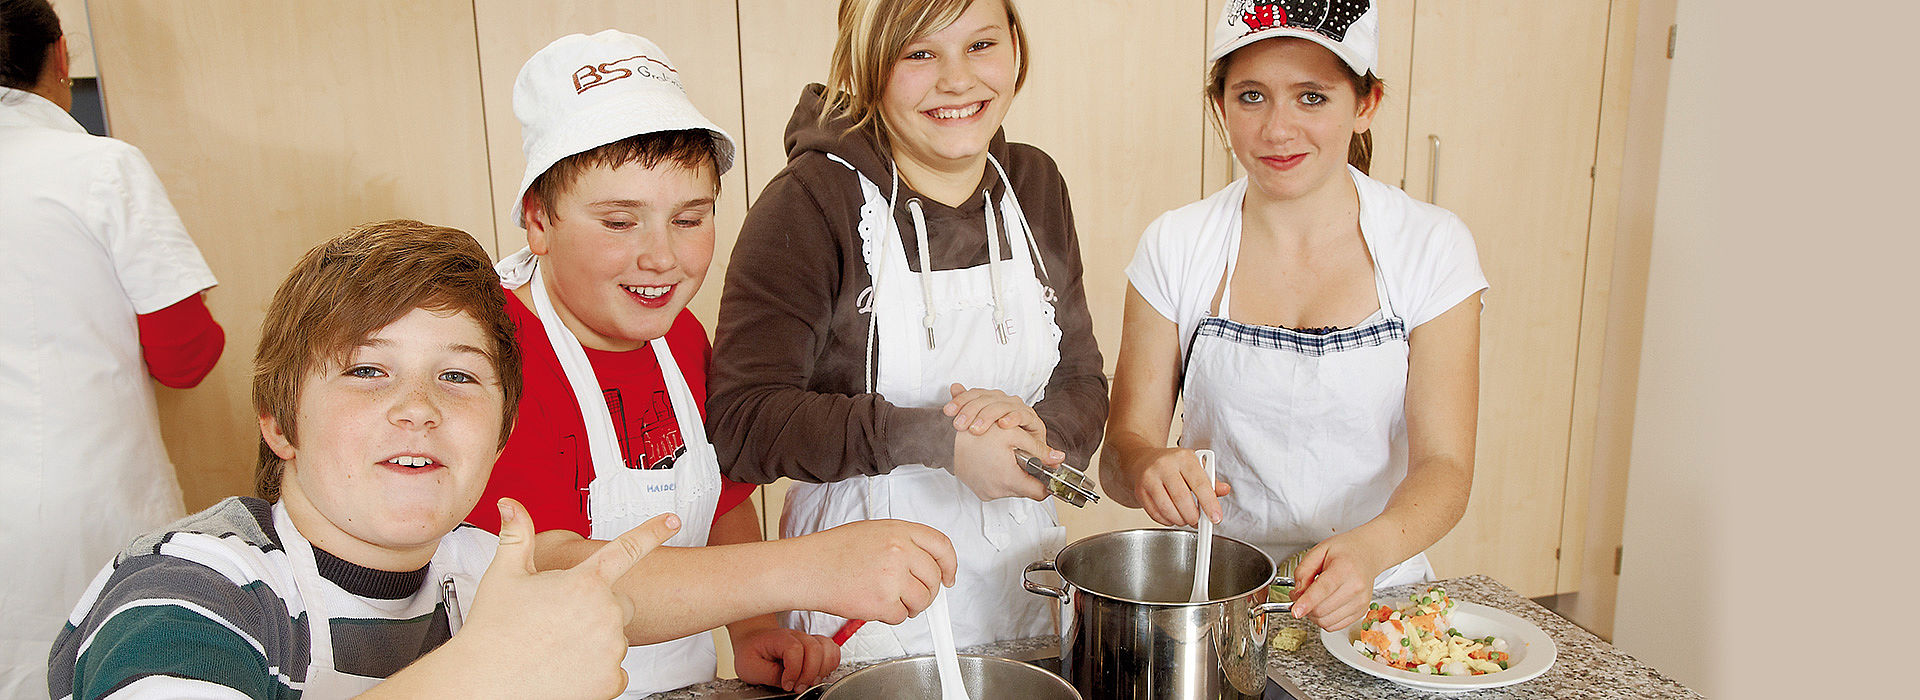 Image: Pupils having fun while cooking in a learning kitchen